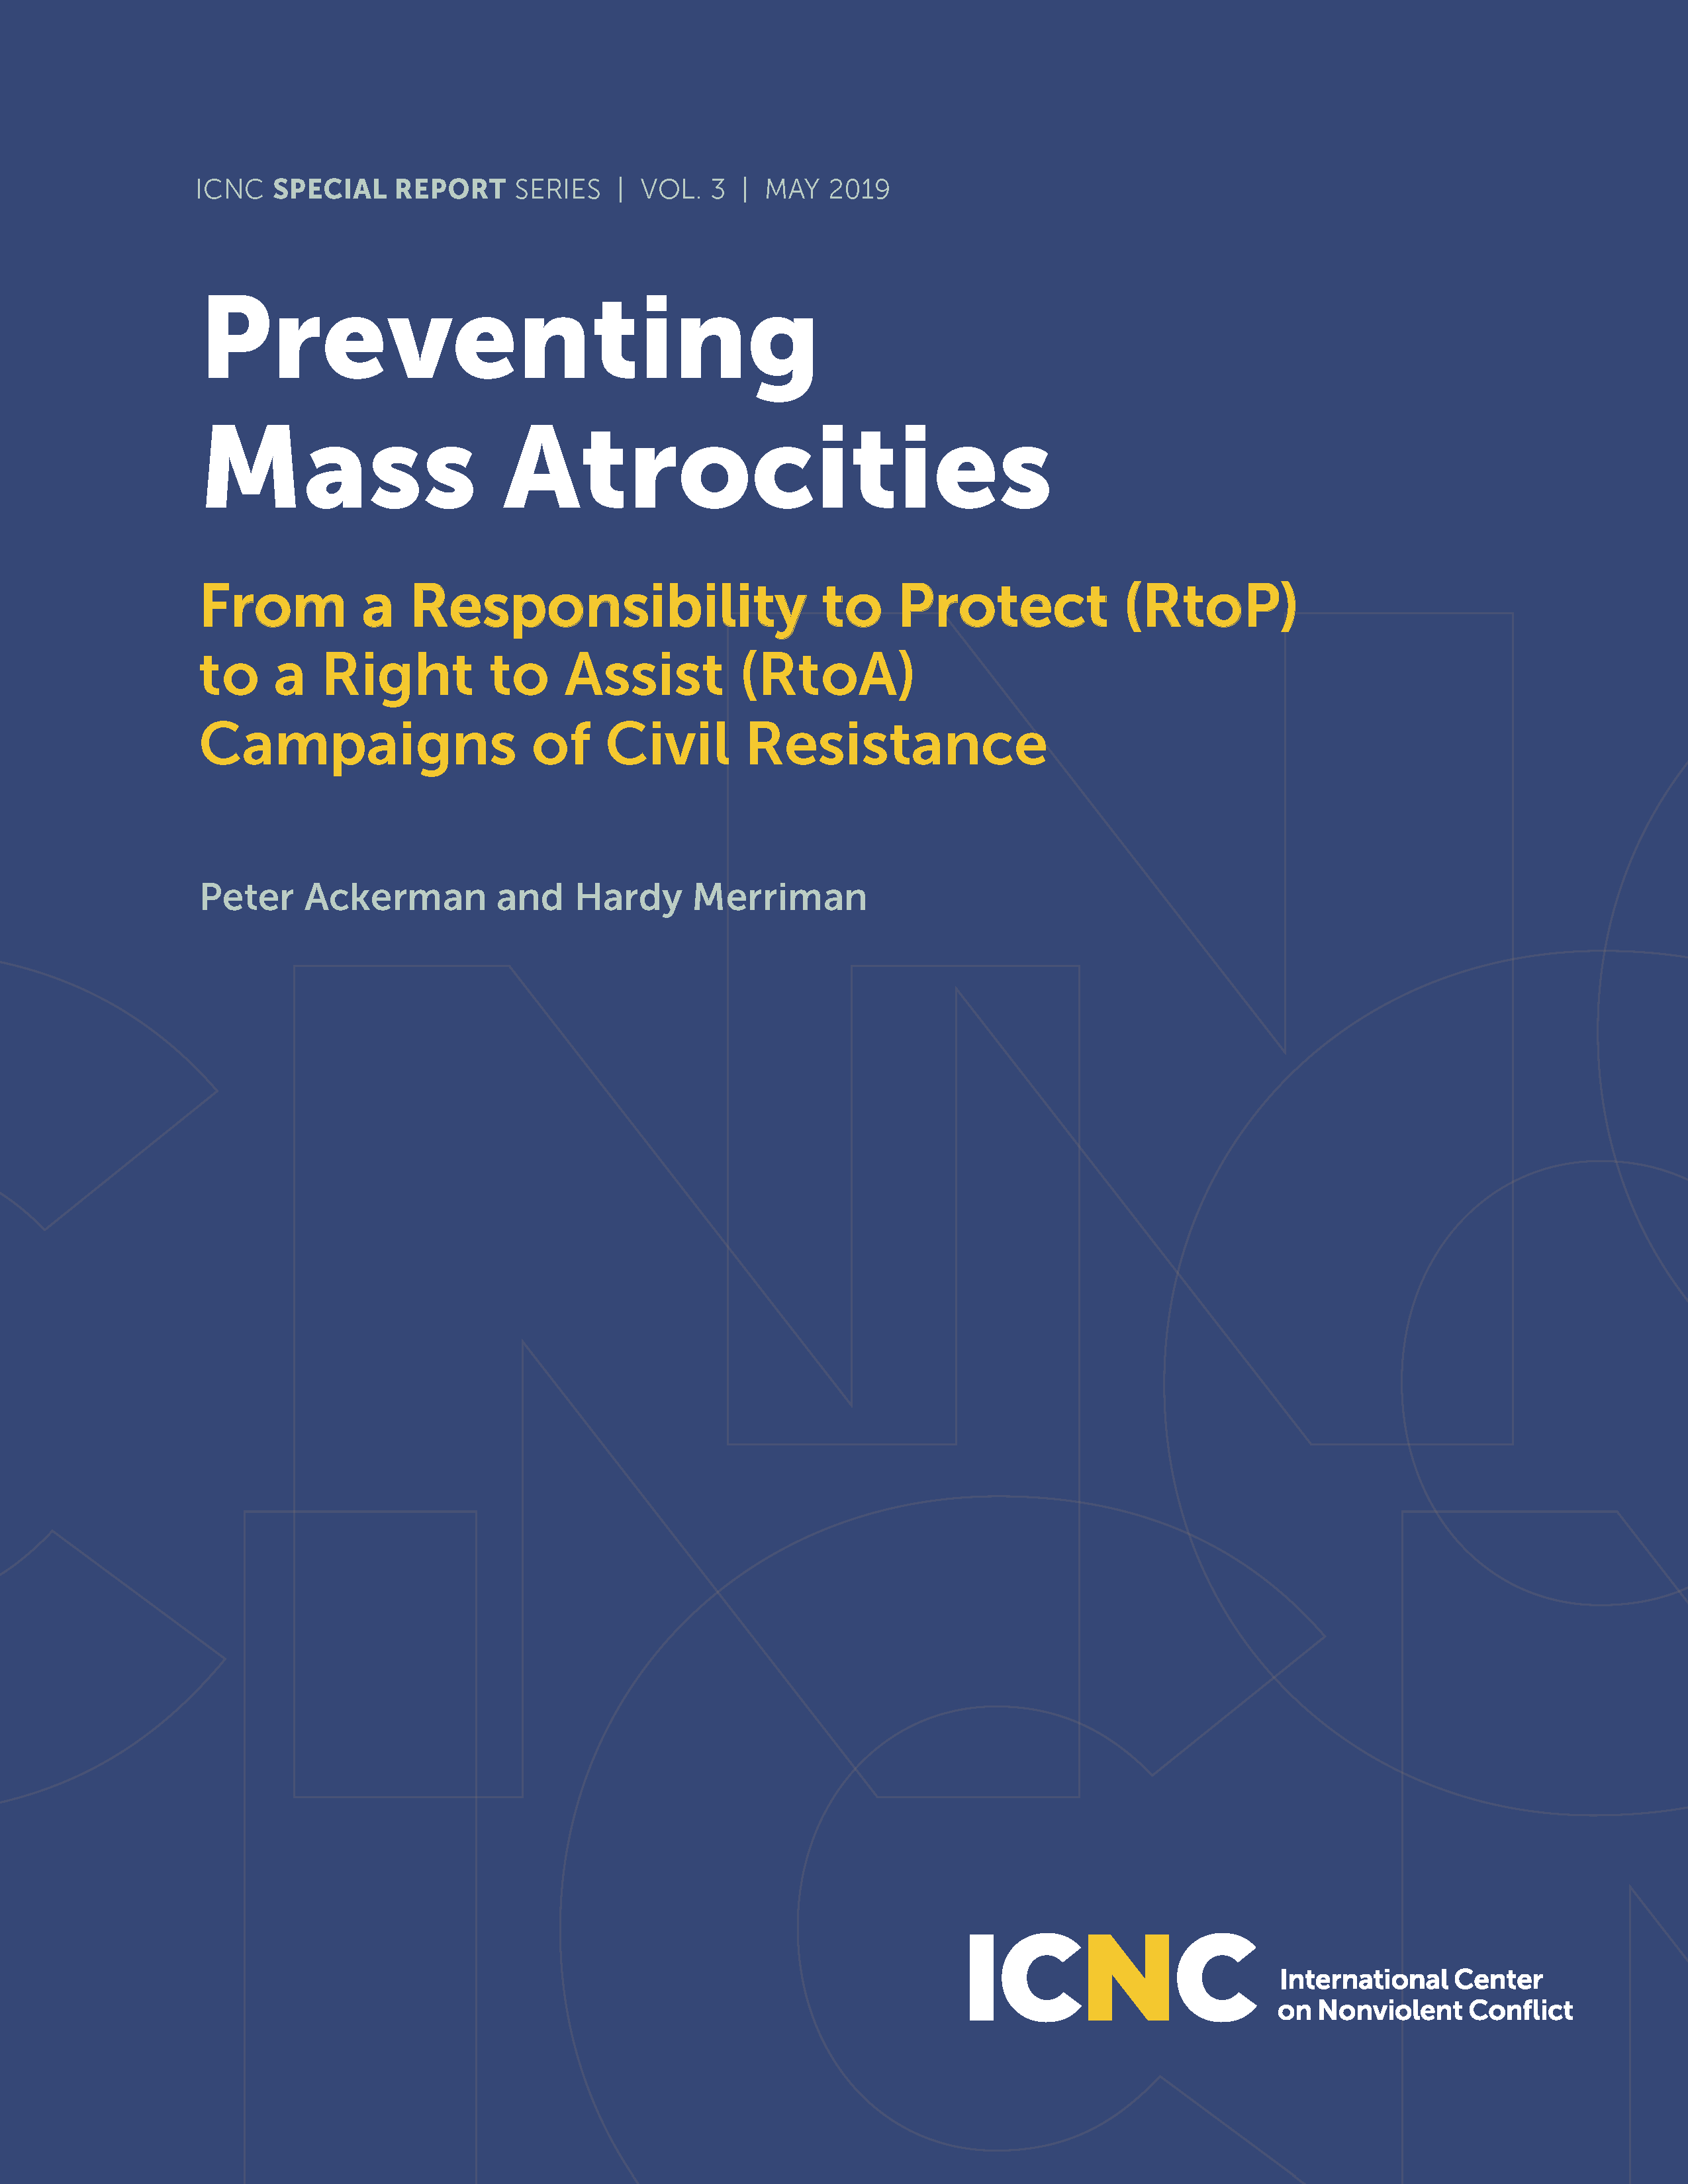 Preventing Mass Atrocities: From a Responsibility to Protect (RtoP) to a Right to Assist (RtoA) Campaigns of Civil Resistance